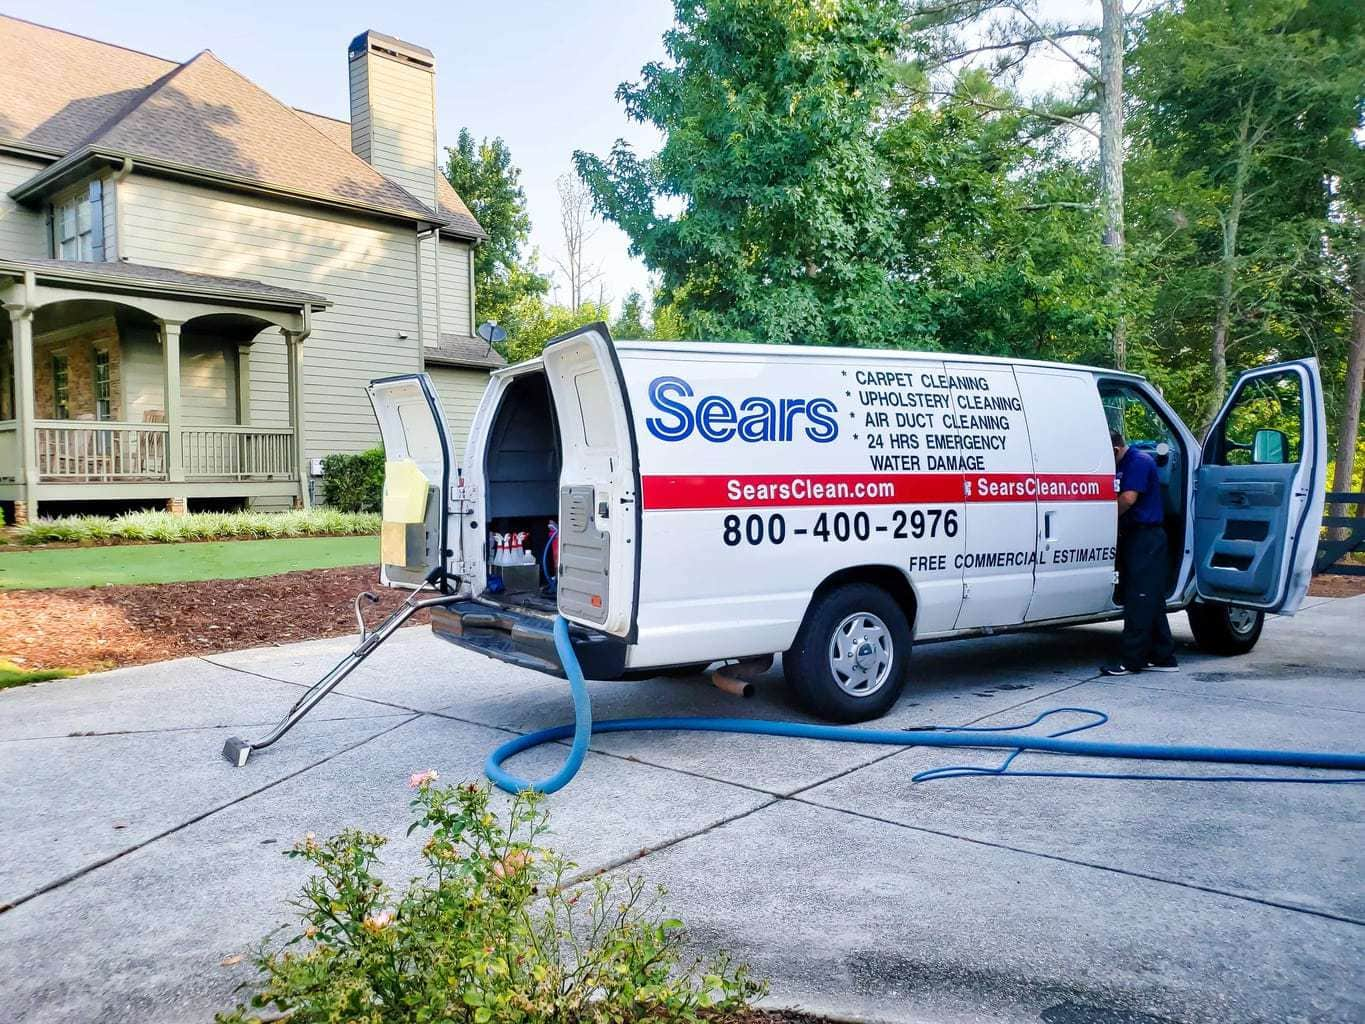 sears sofa cleaning coupon simmons verona reviews 5 helpful carpet tips every busy mom needs to know